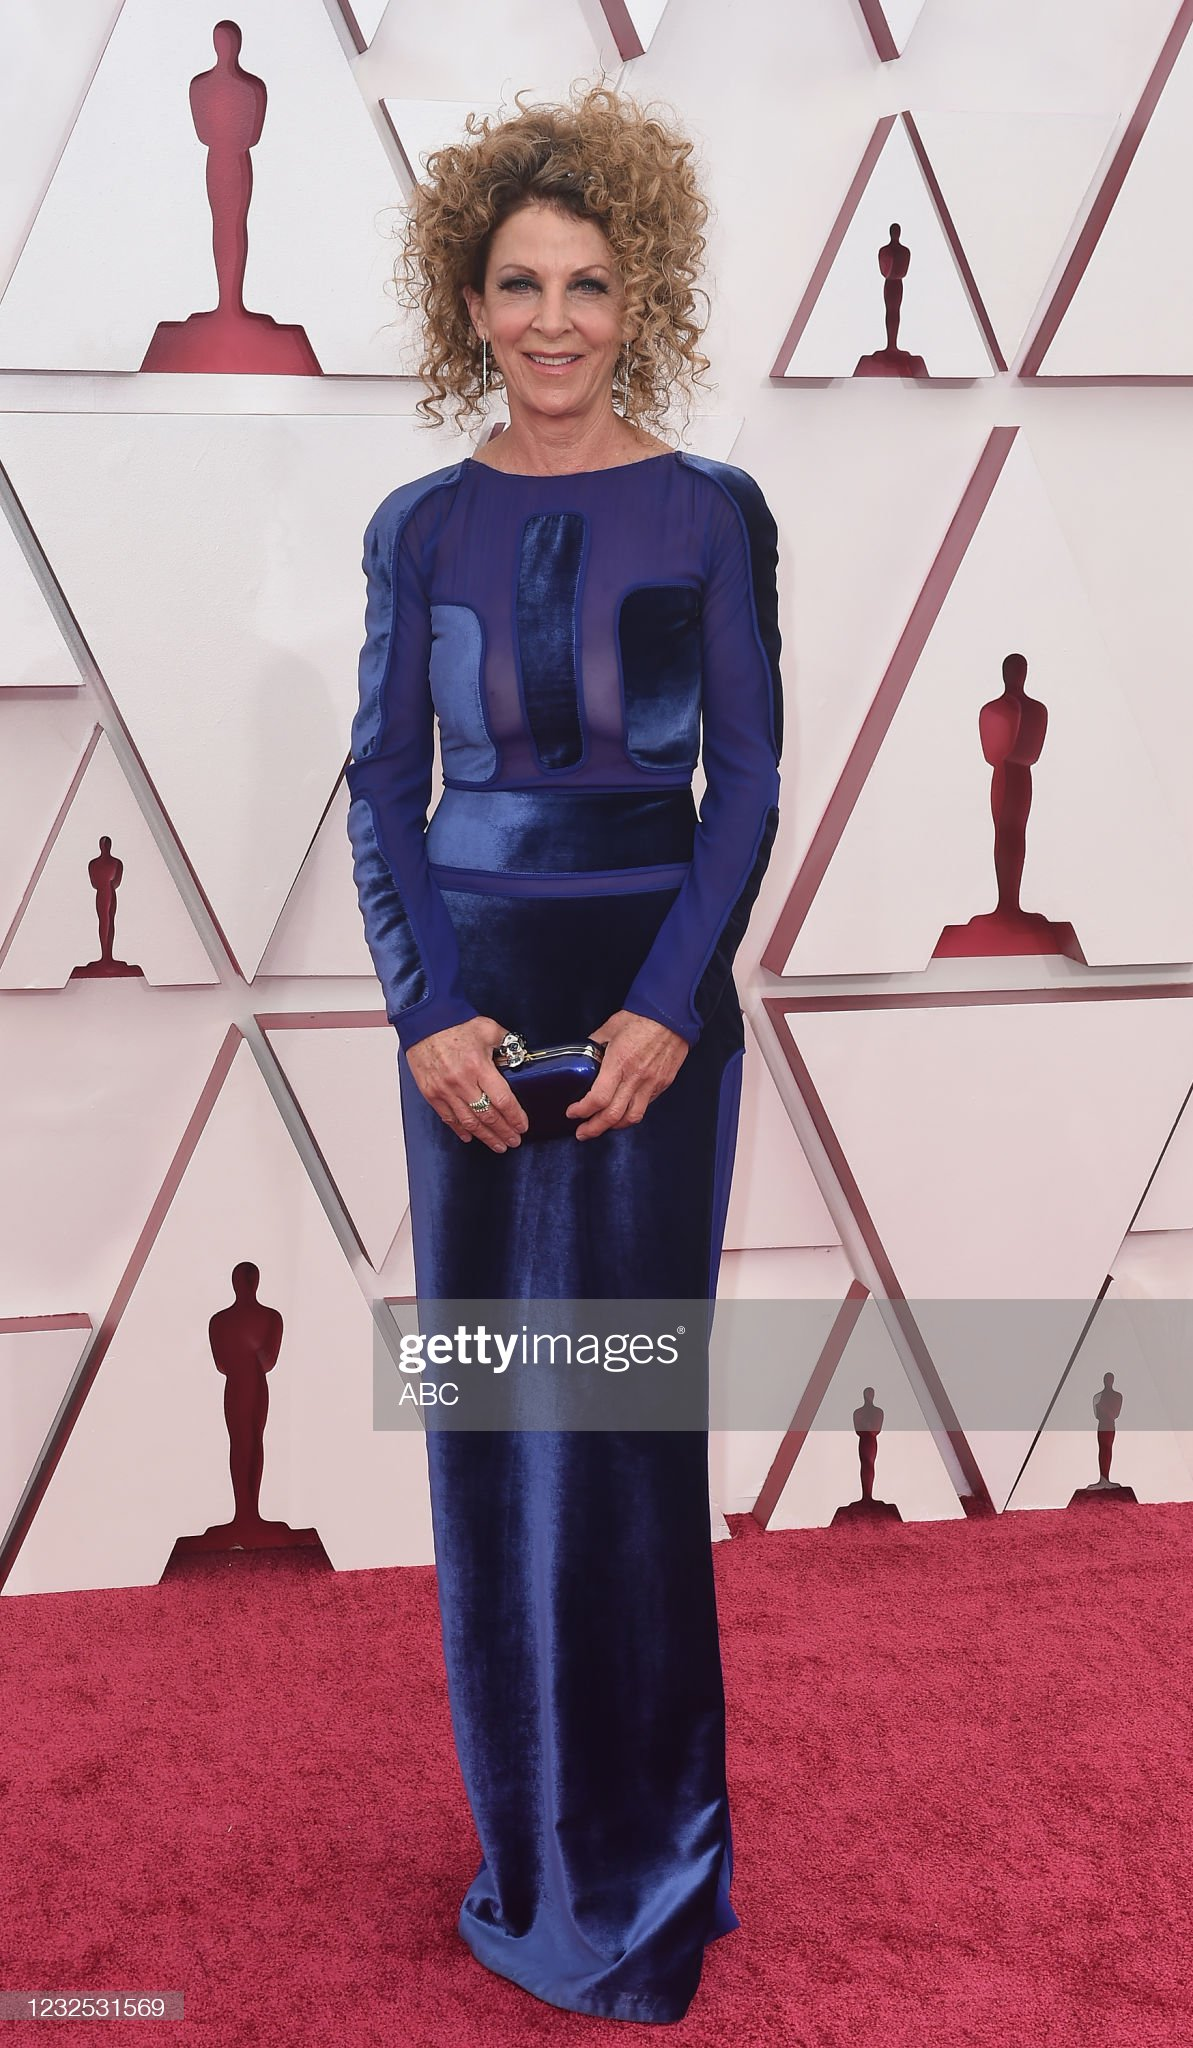 the-93rd-oscars-will-be-held-on-sunday-april-25-at-union-station-los-picture-id1232531569?s=2048x2048